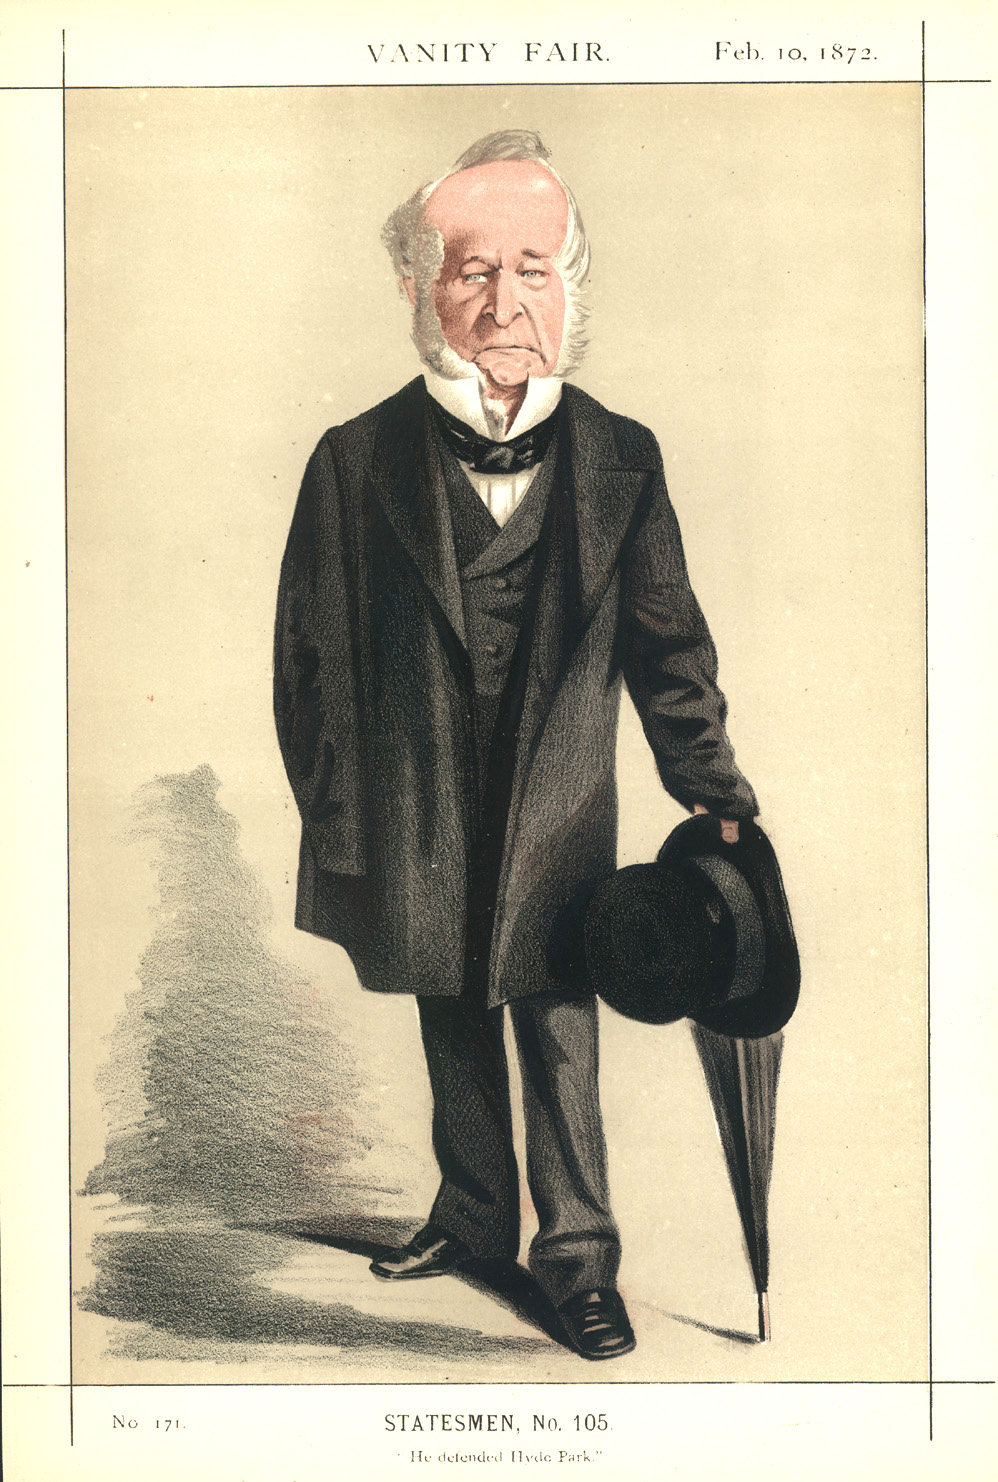 """He defended Hyde Park."" Spencer Horatio Walpole caricature c1872."